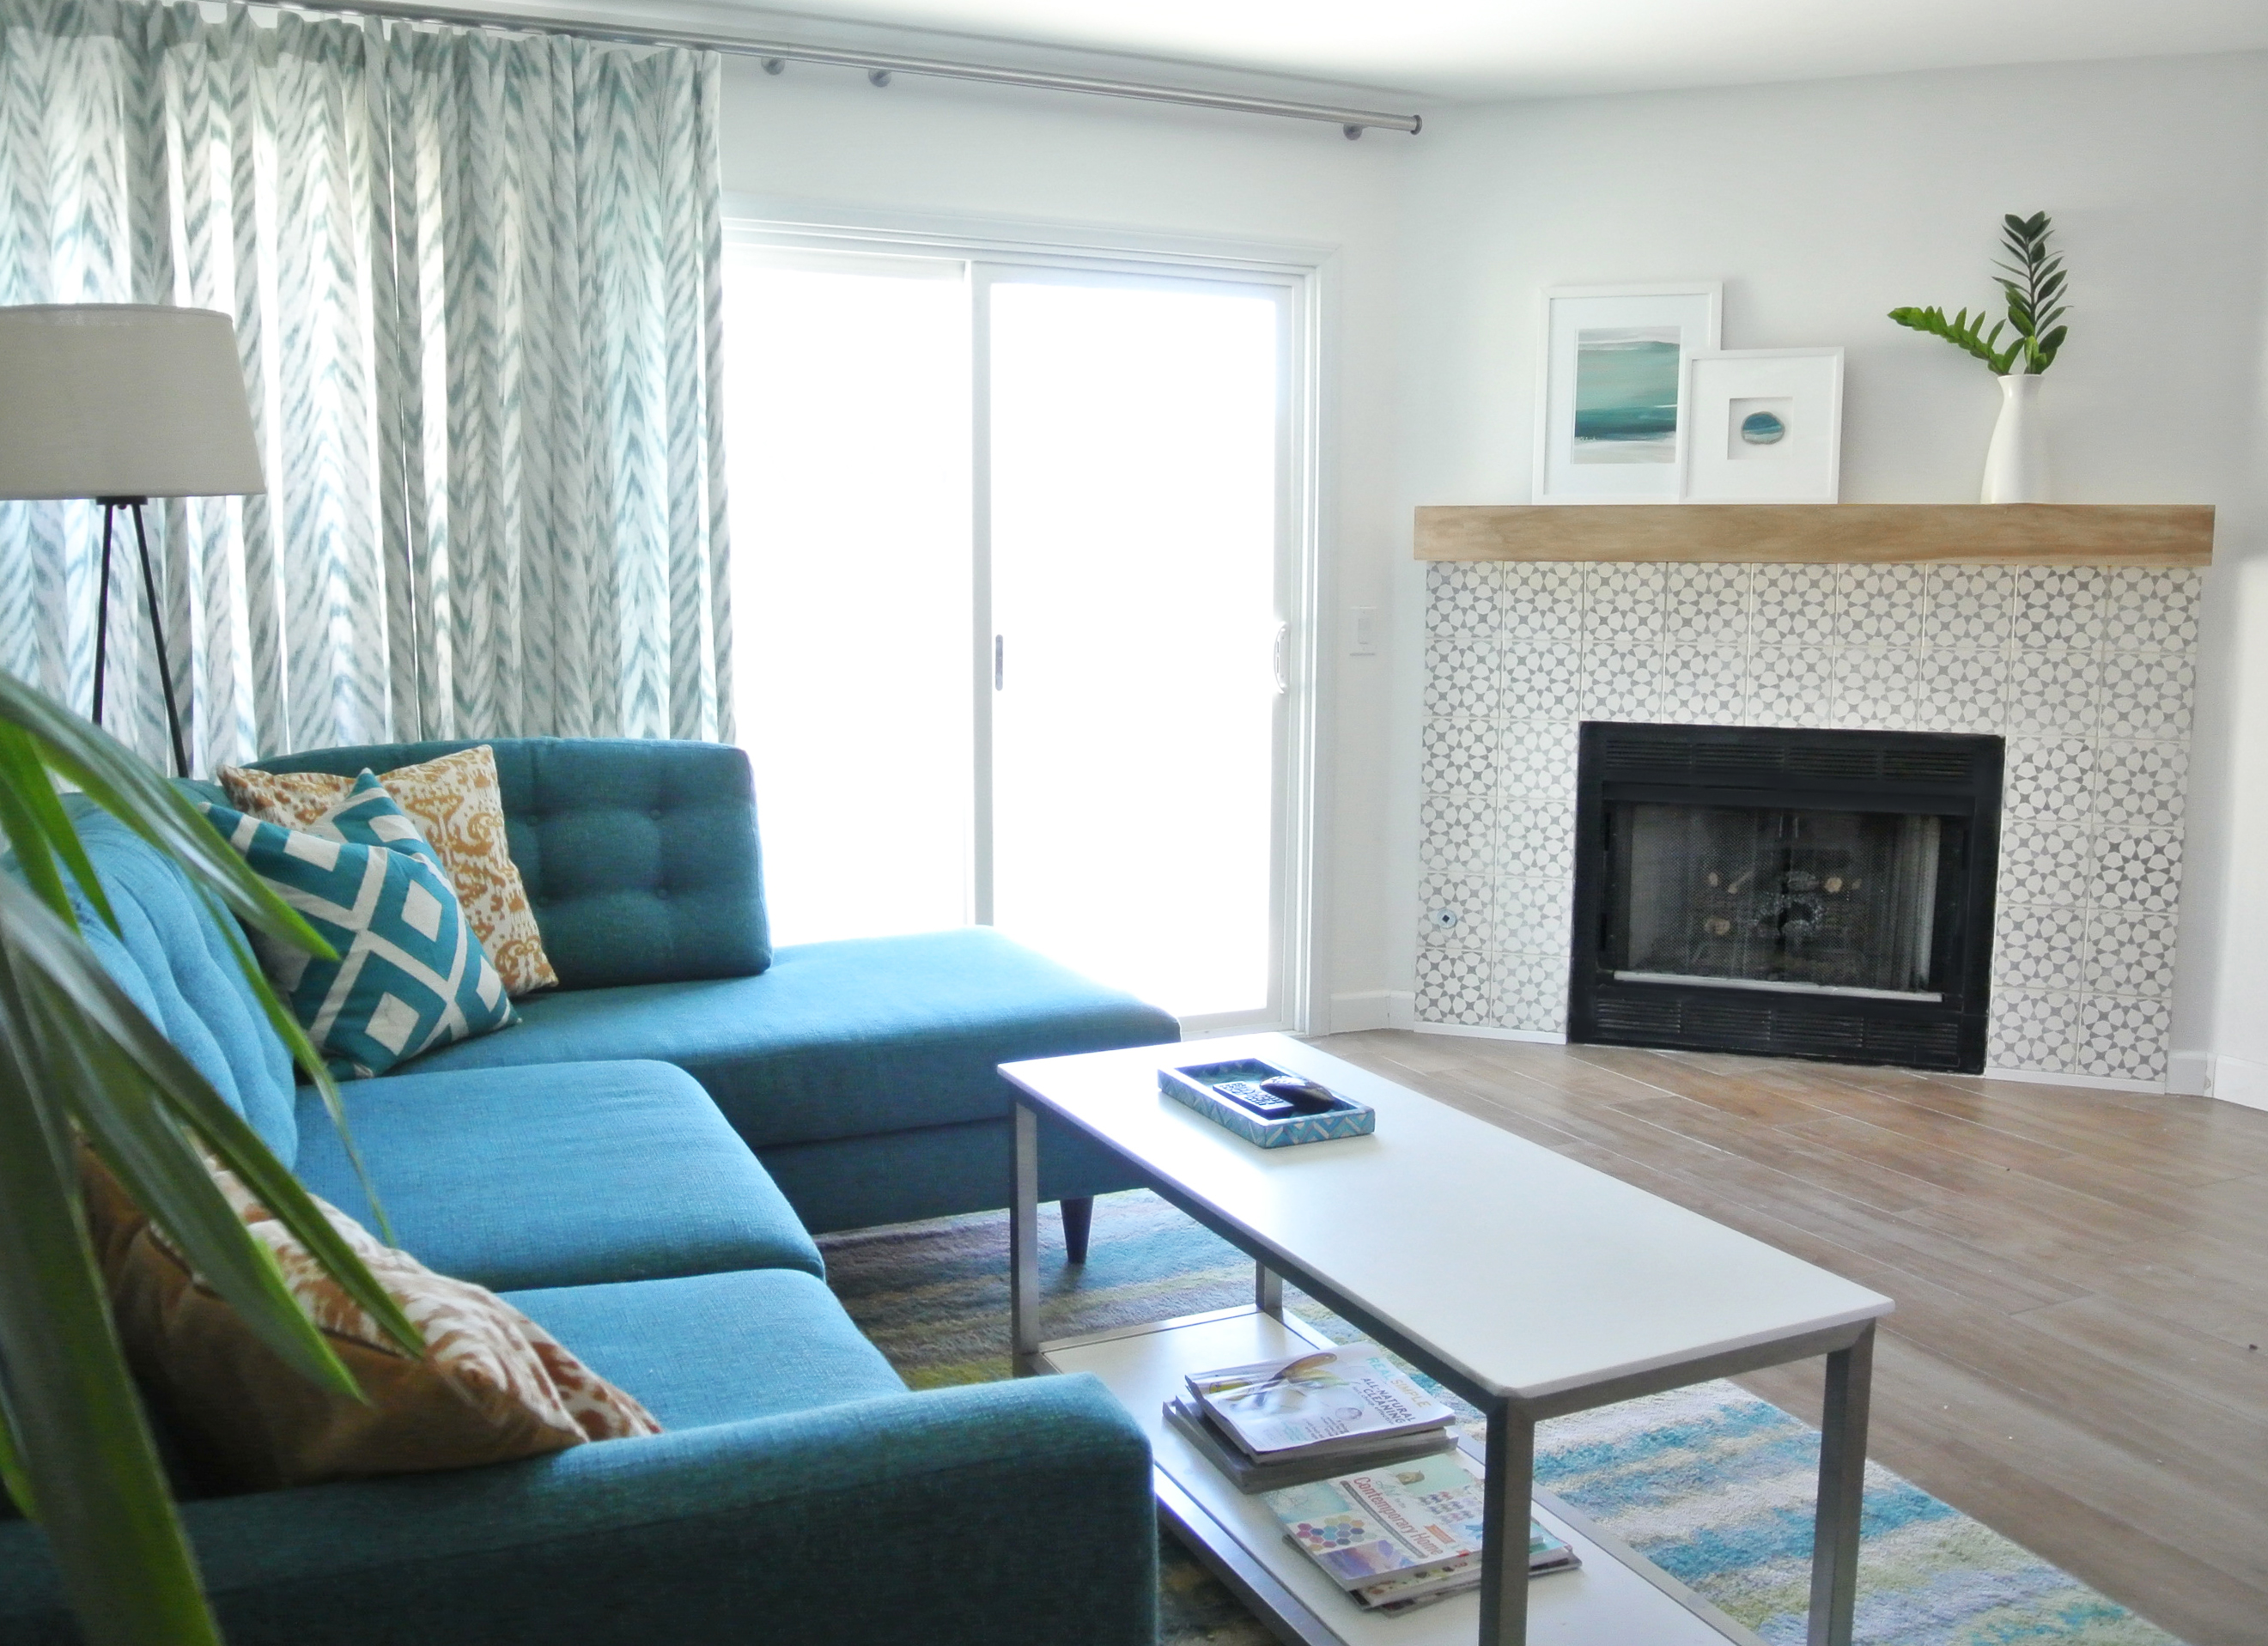 Diy fireplace makeover centsational style for Tela sofa exterior